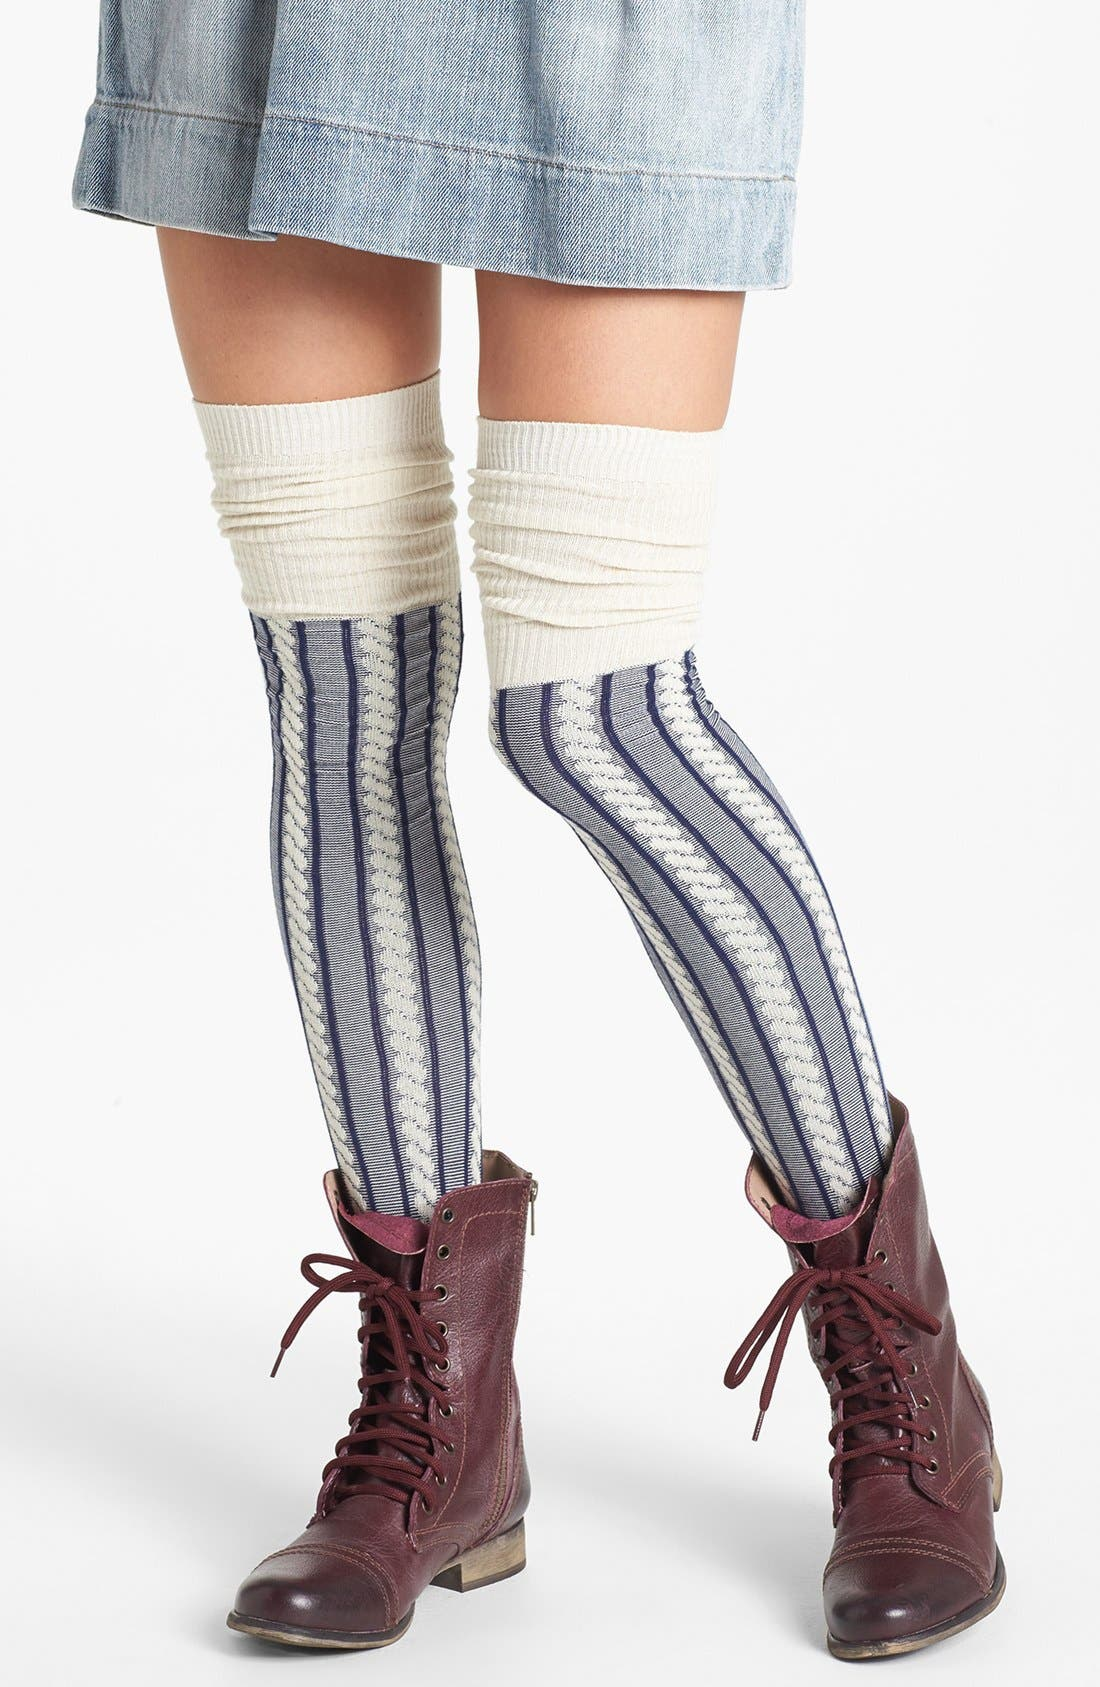 Alternate Image 1 Selected - Free People 'Cable Guy' Thigh High Socks